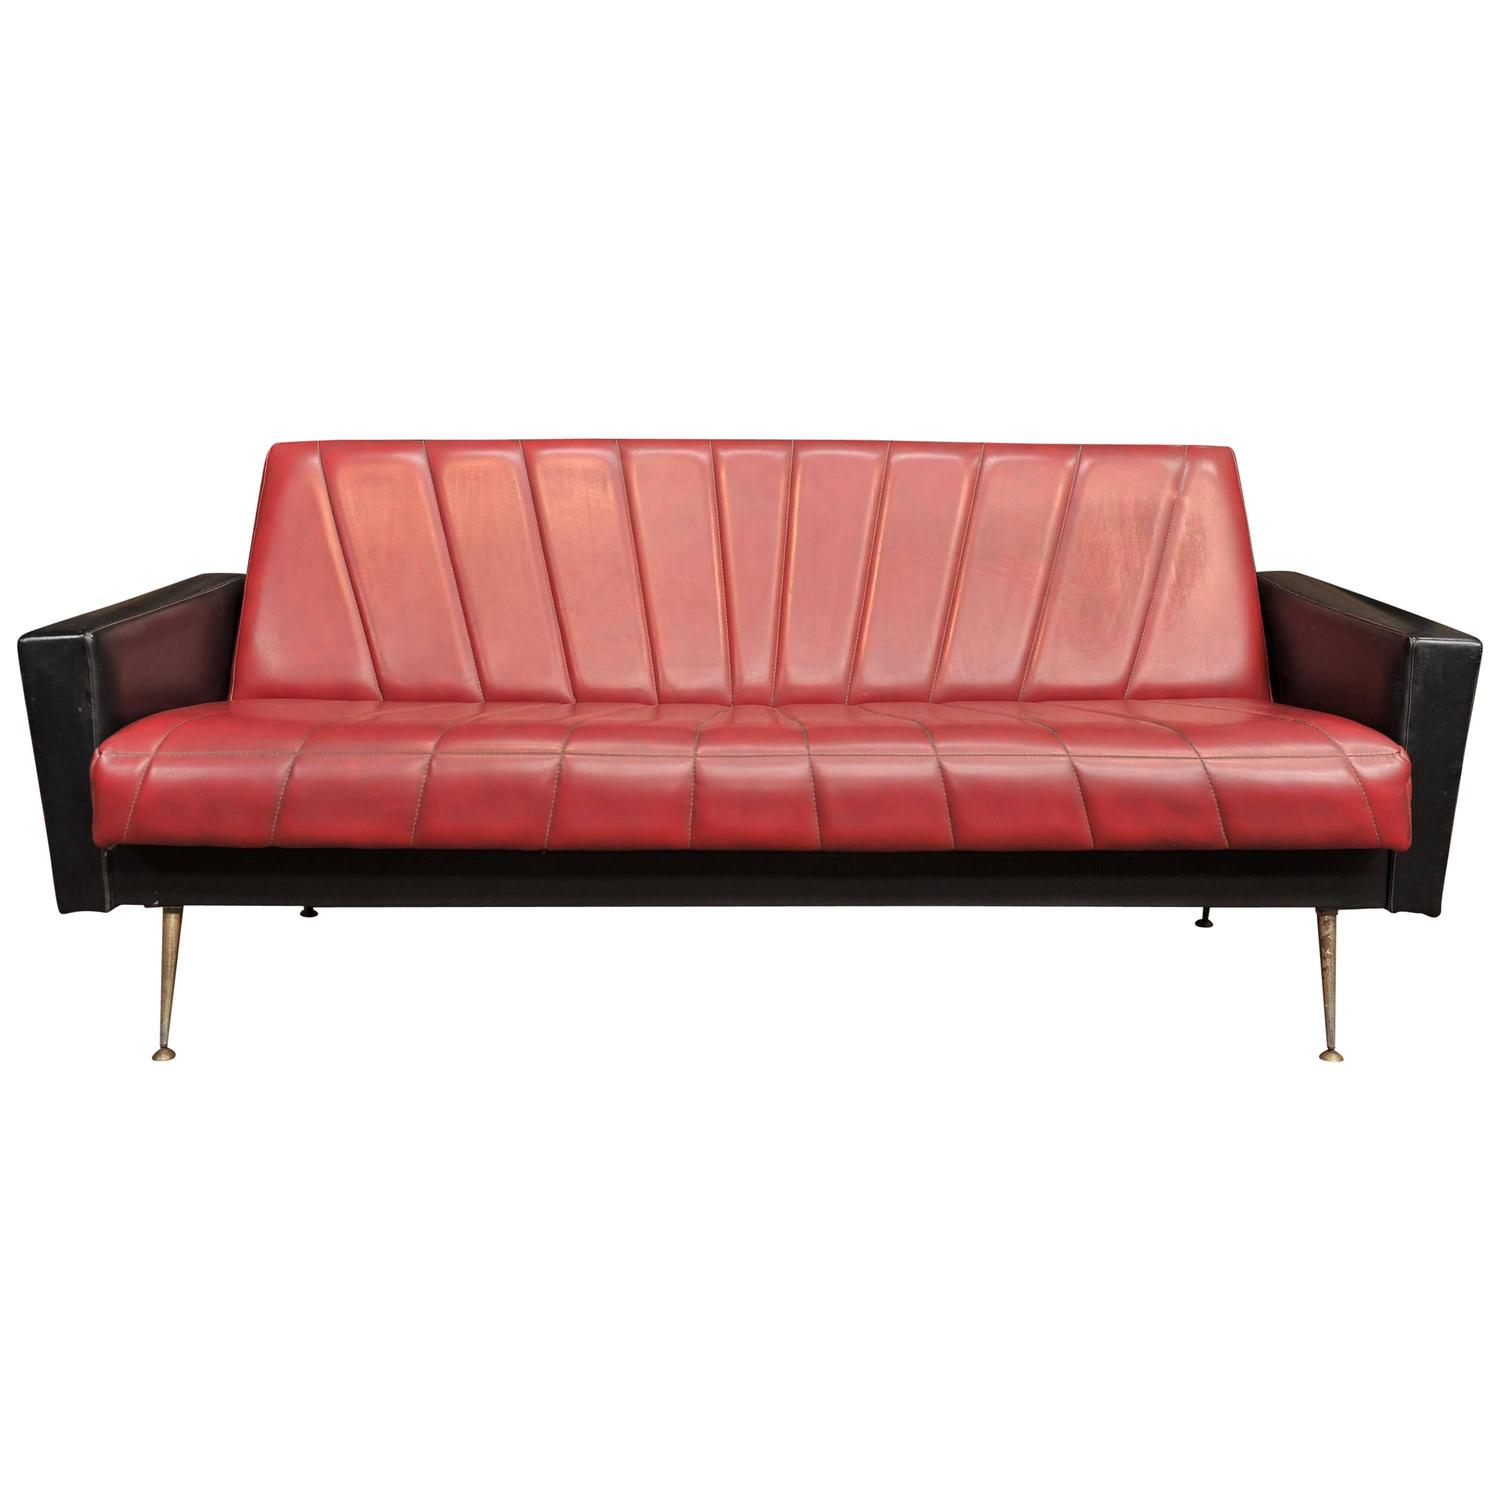 French Vintage Convertible Sofa 1960s At 1stdibs